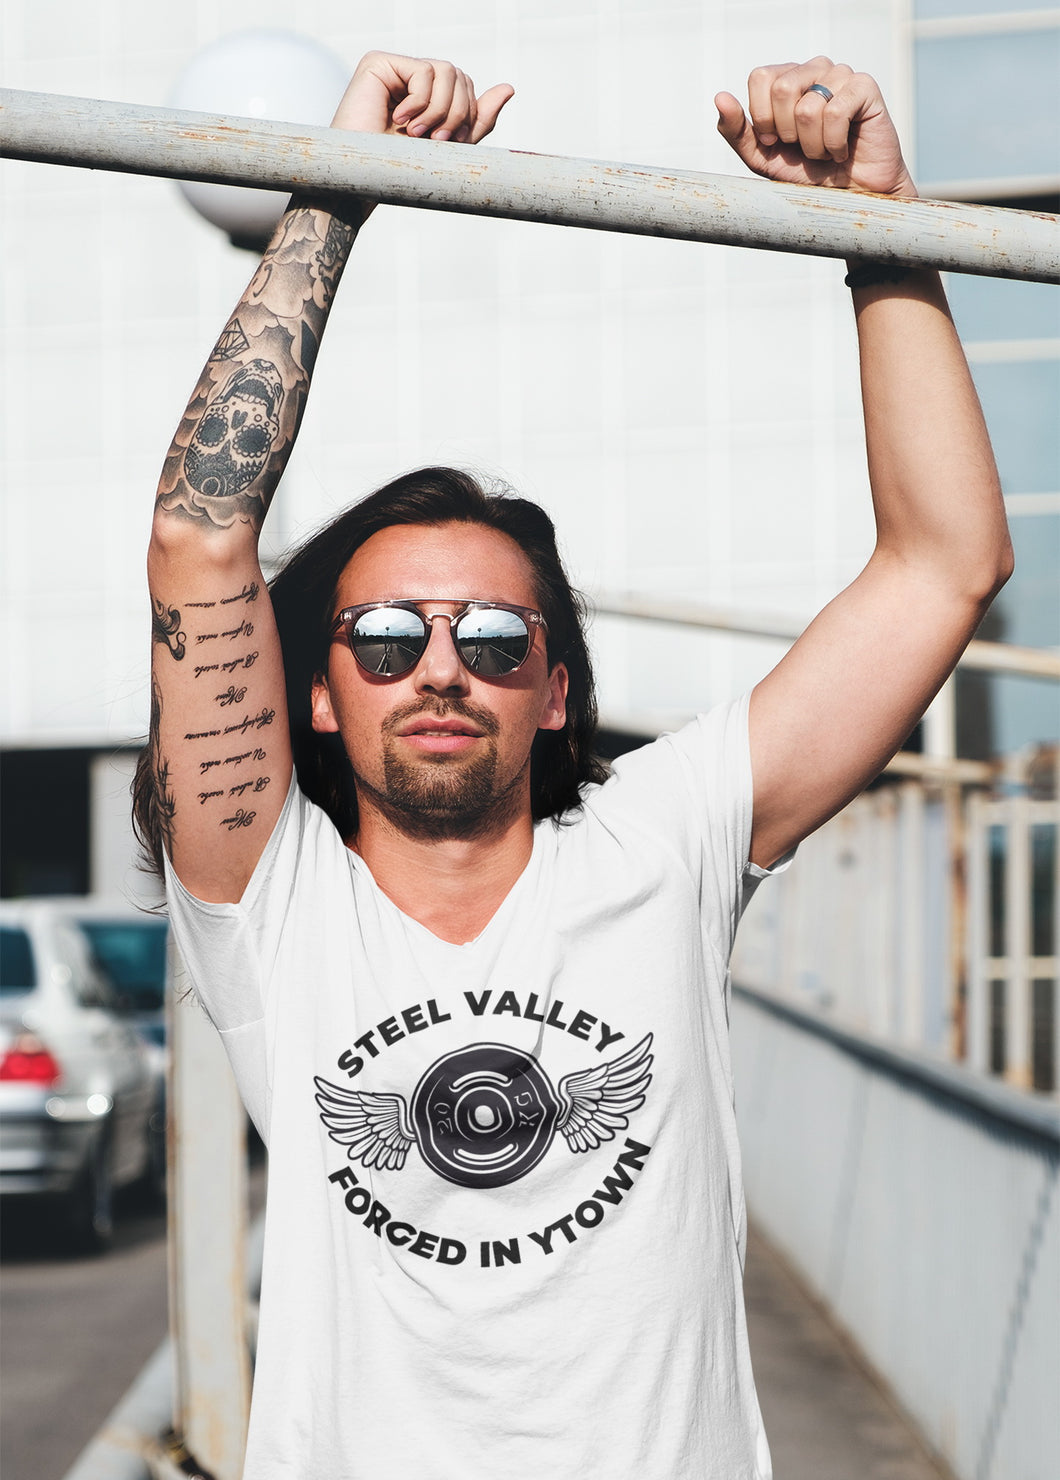 Strong Steel Valley T-shirt